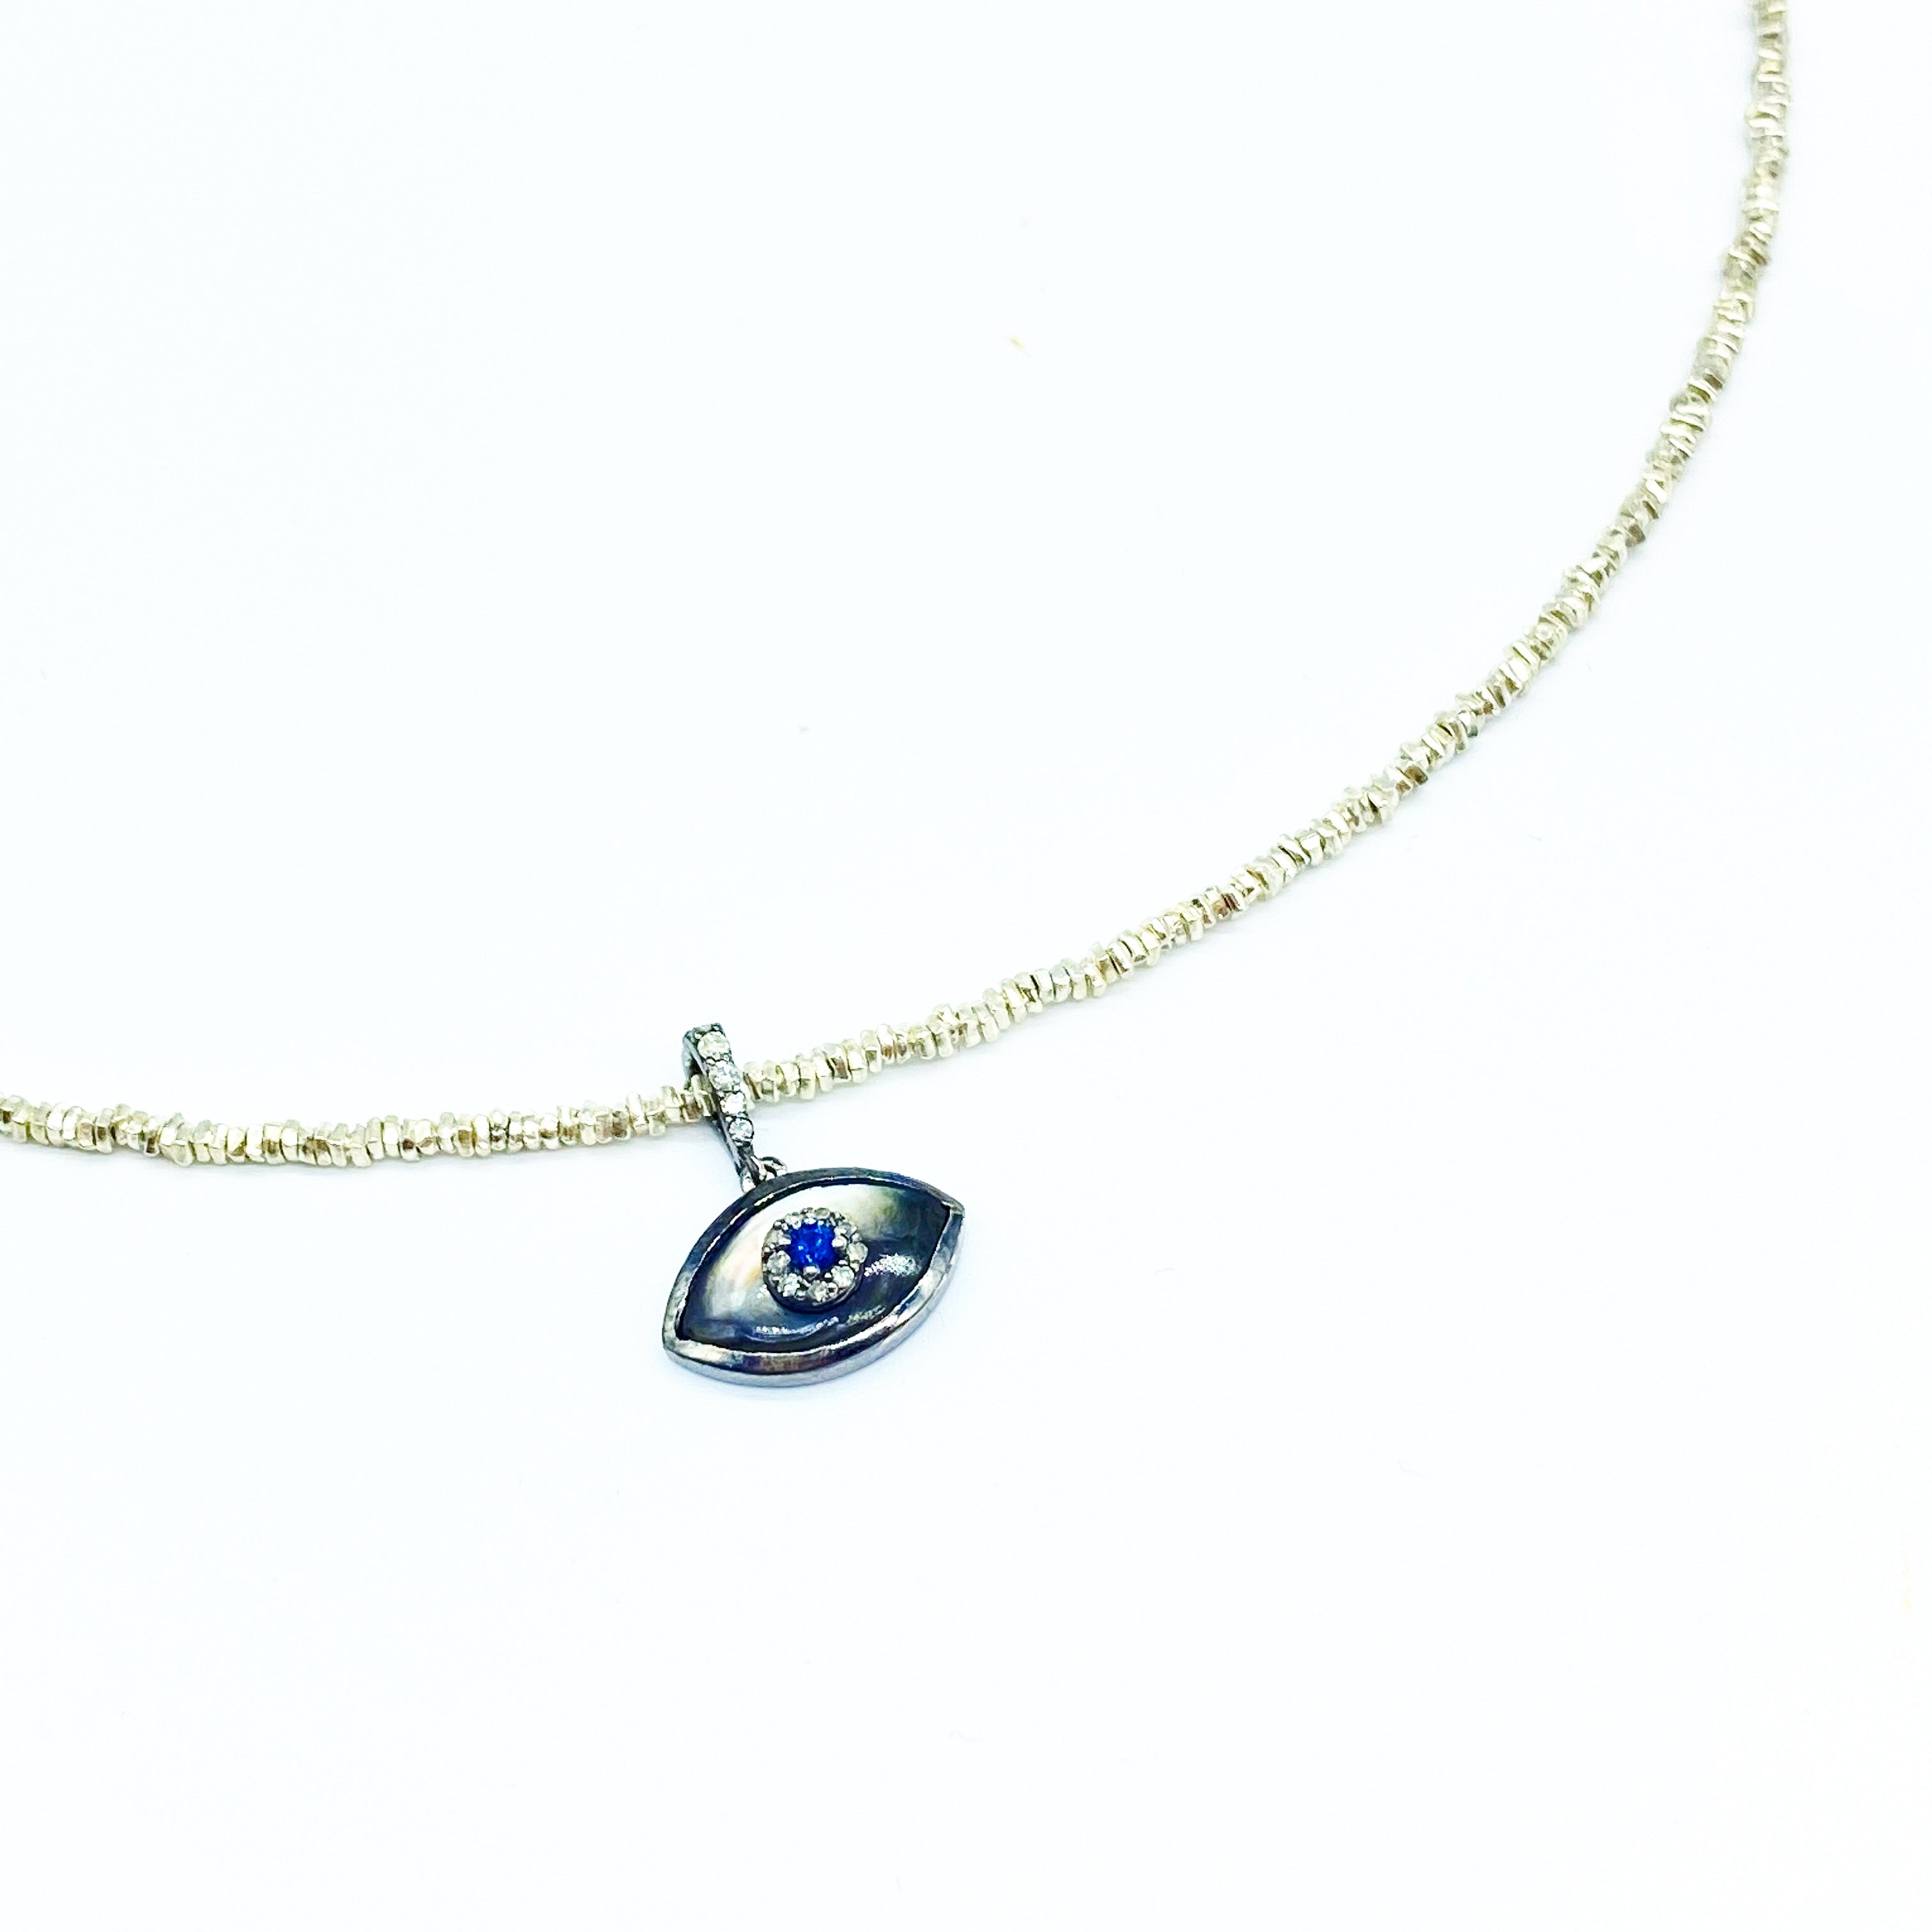 EVIL EYE PROTECTION TALISMAN NECKLACE